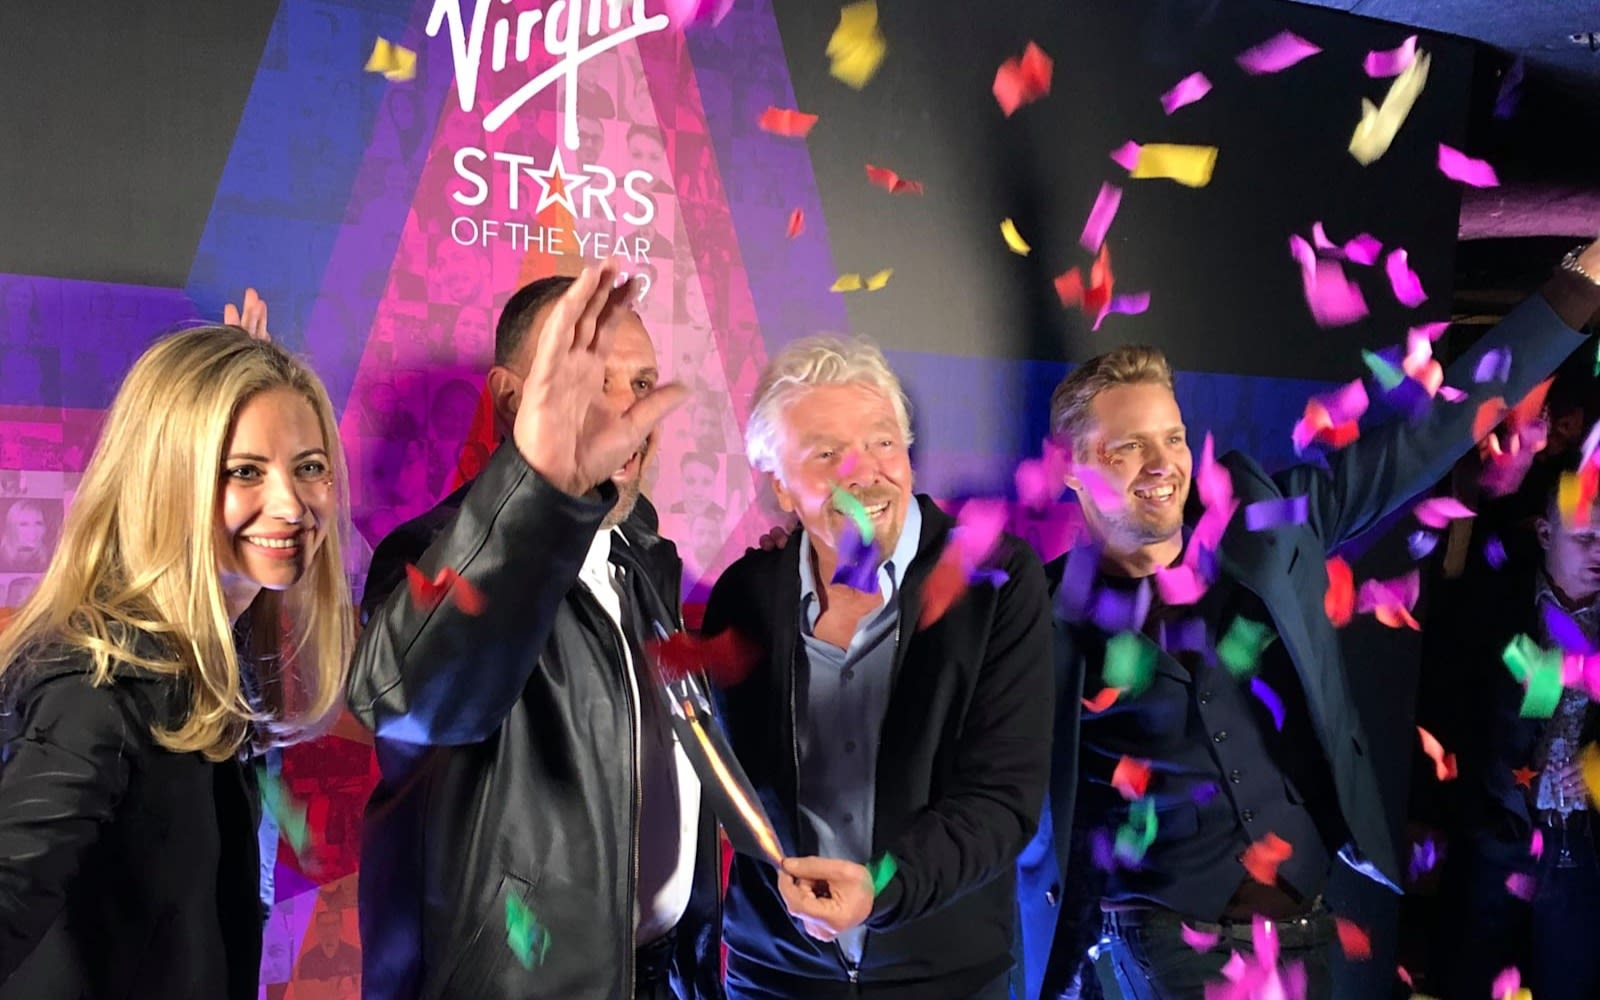 Richard Branson, Sam Branson, Holly Branson and a Virgin Galactic smile with confetti at a party